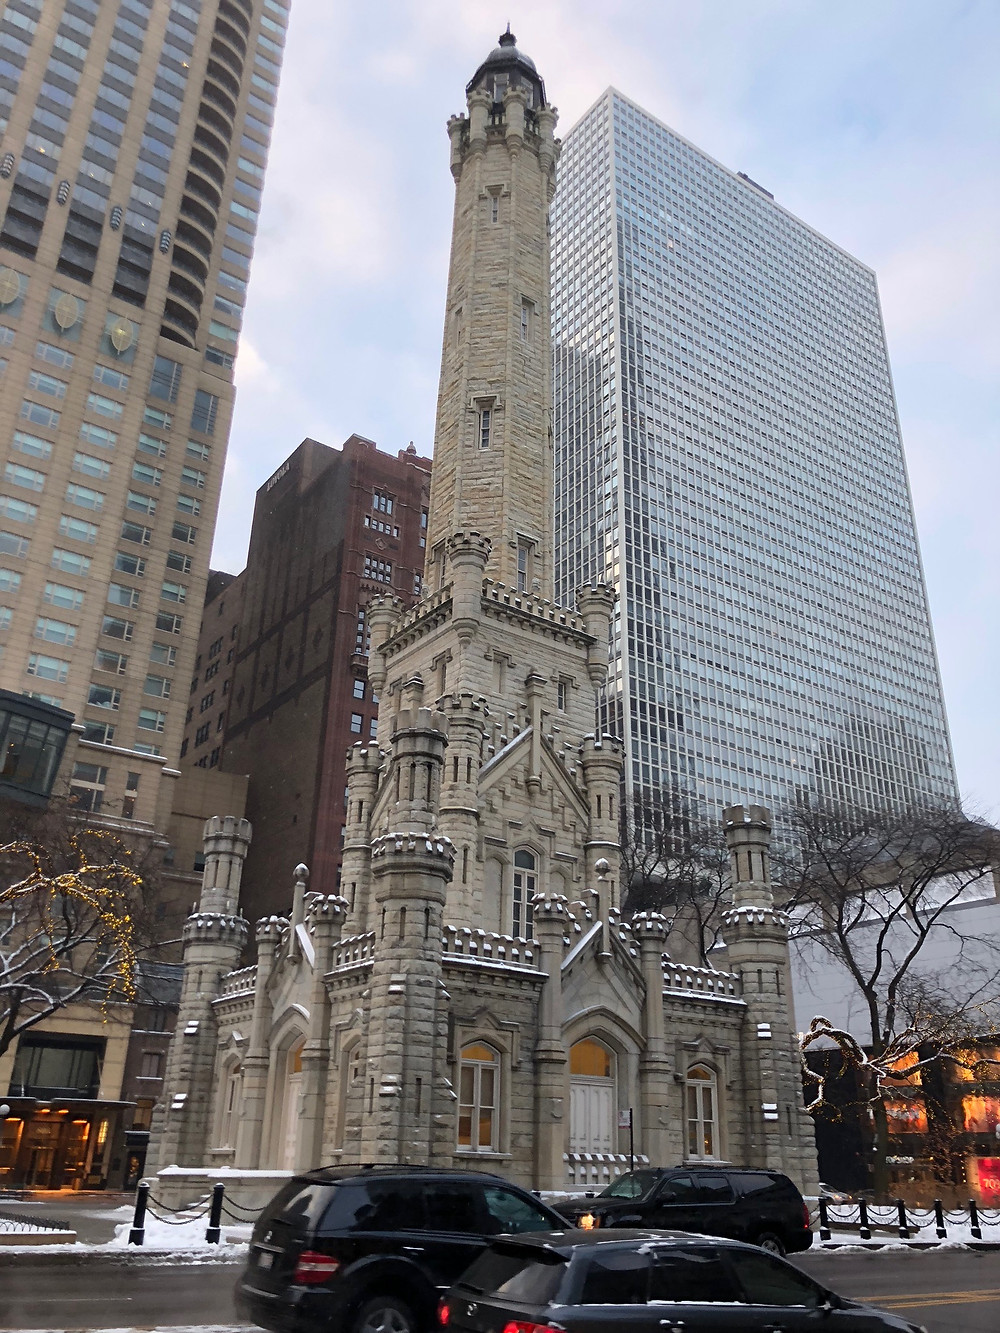 Picture of down town Chicago's old water tower